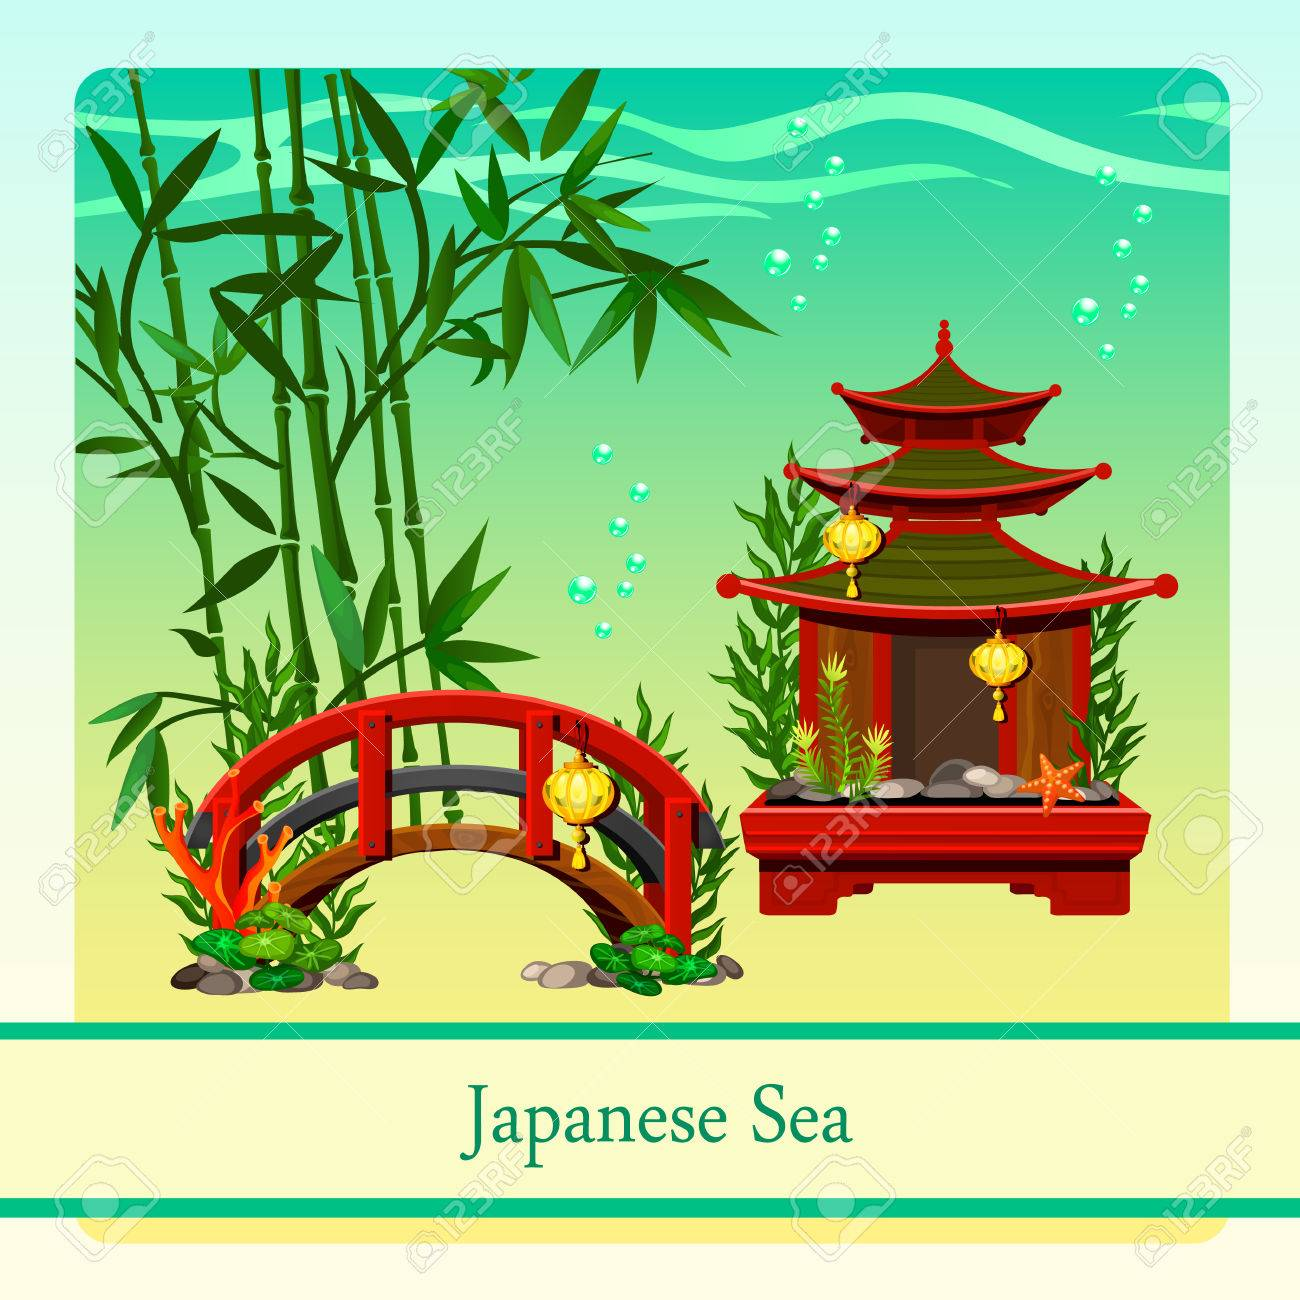 Japanese Sea With Elements Of Japanese Culture Stock Vector 45989325